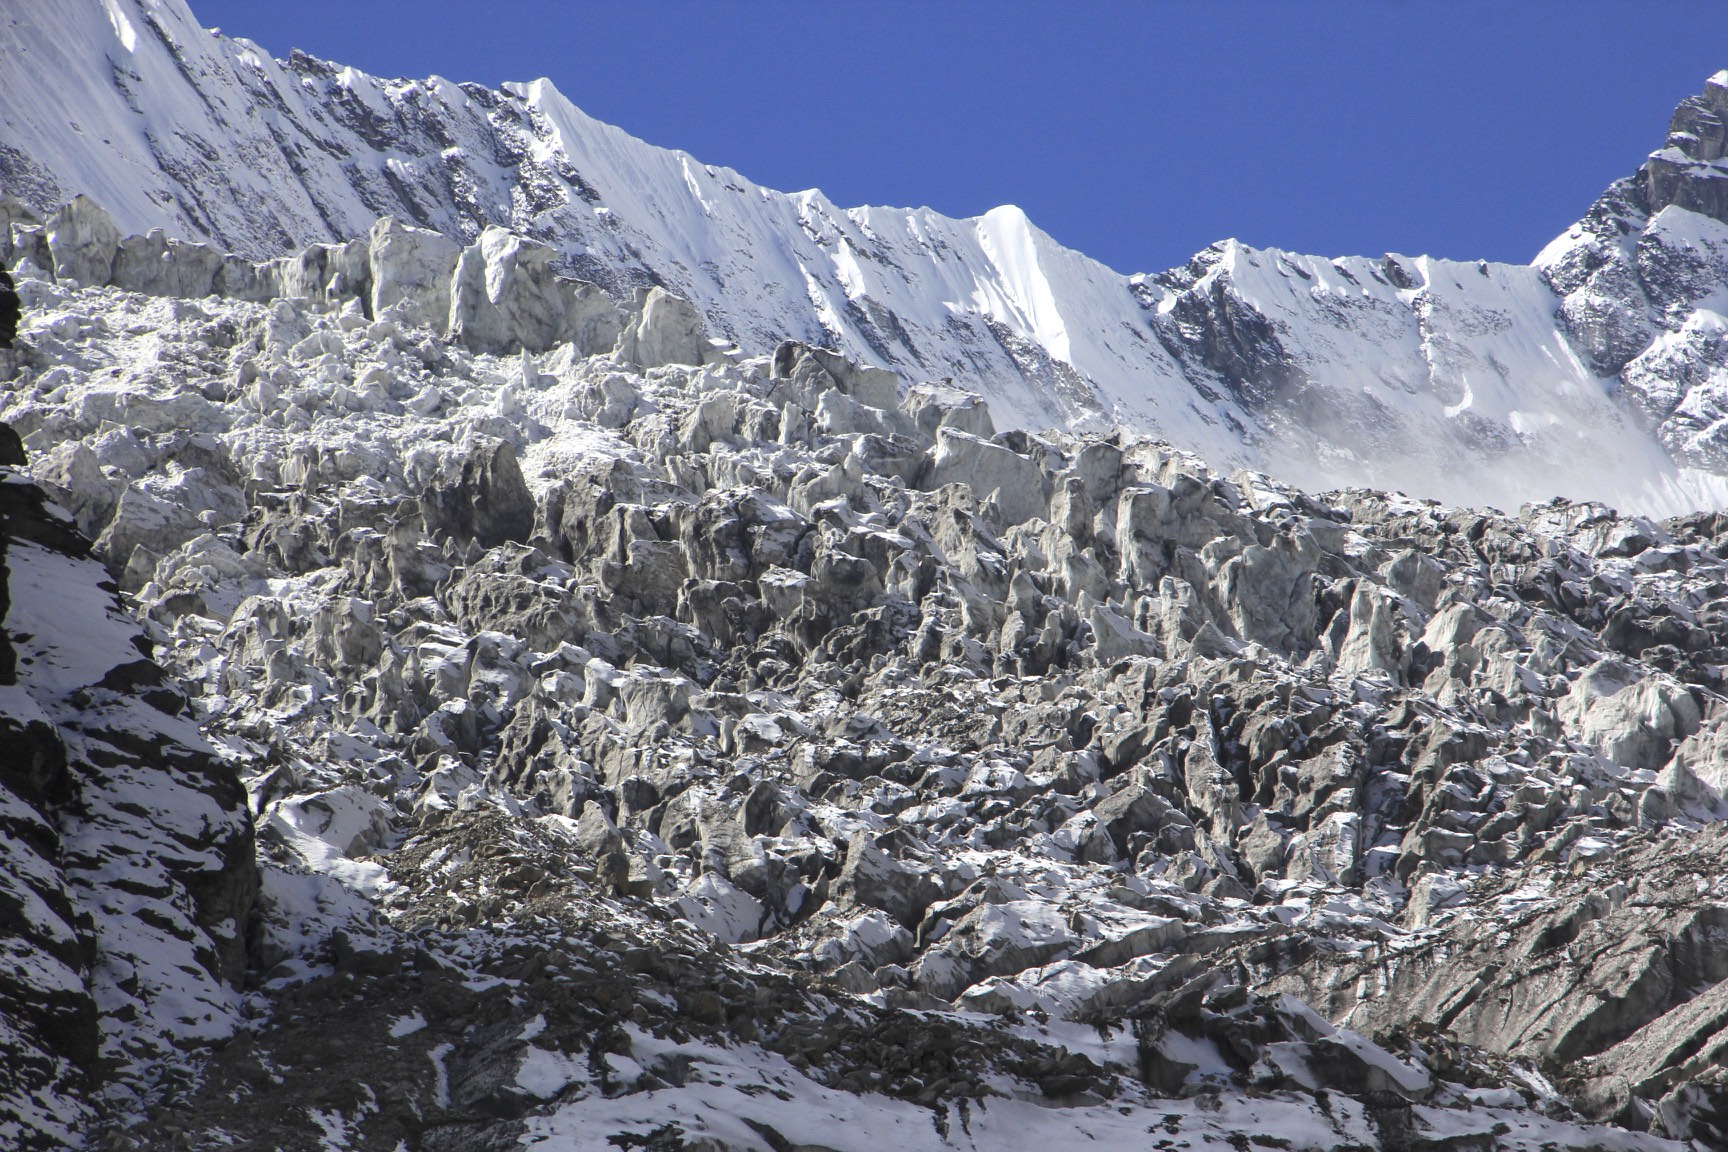 The icefall of Annapurna IV and Himalchuli